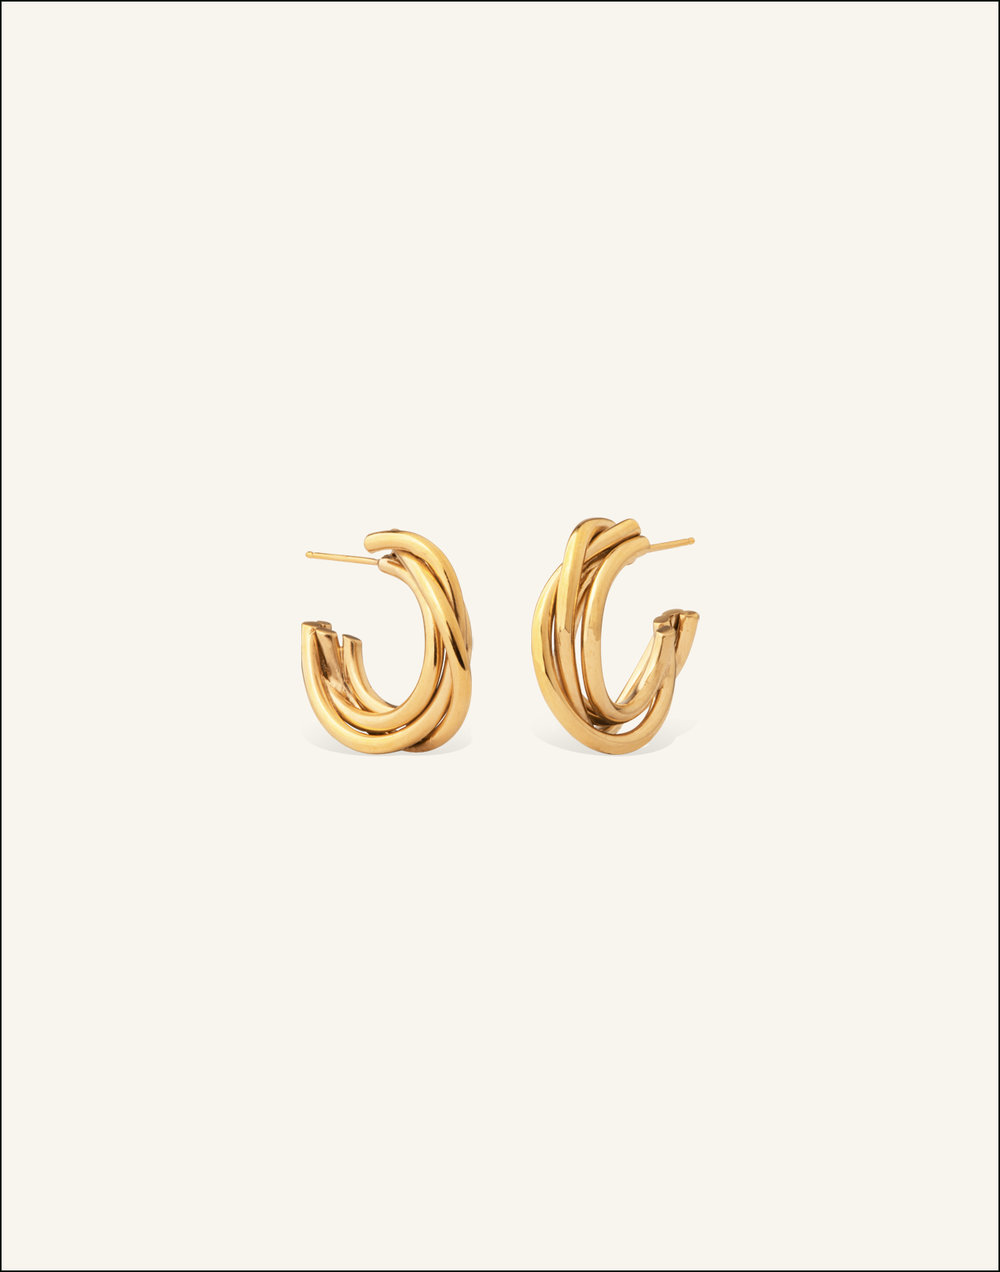 Completedworks-Earrings-An-Encounter-1-1.jpg